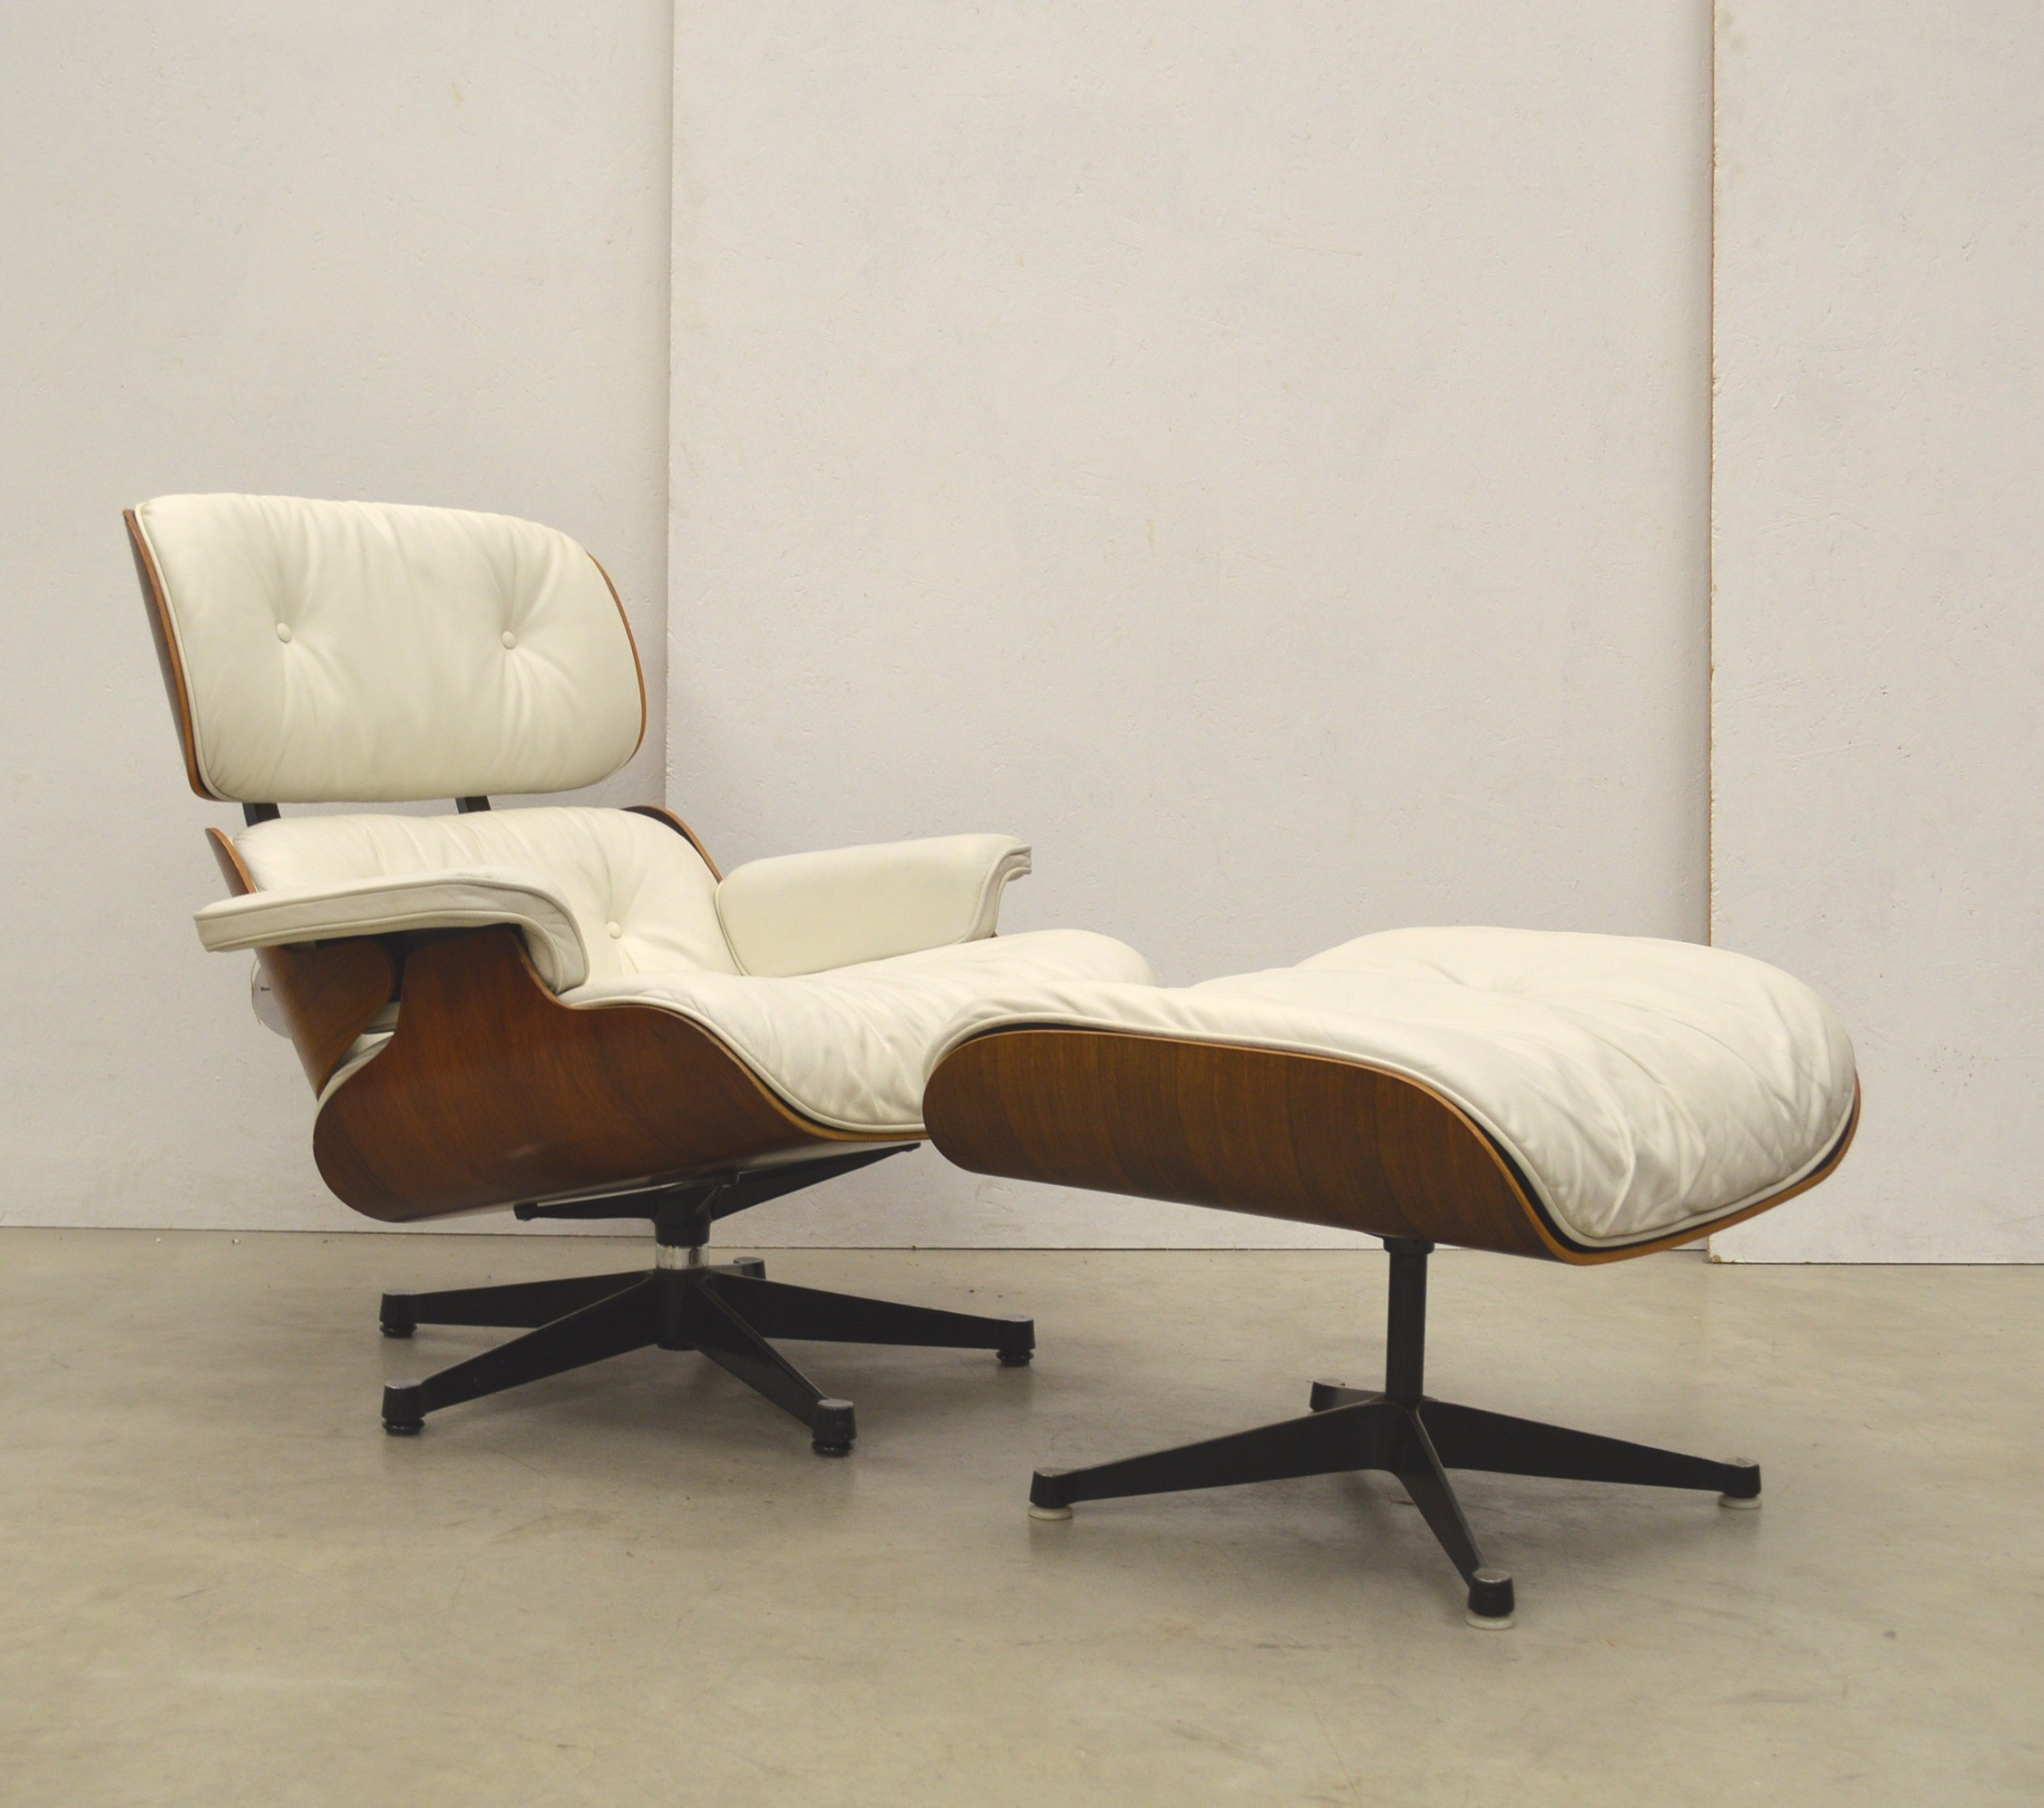 Poul Cadovius Vintage White Lounge Chair By Charles Eames For Herman